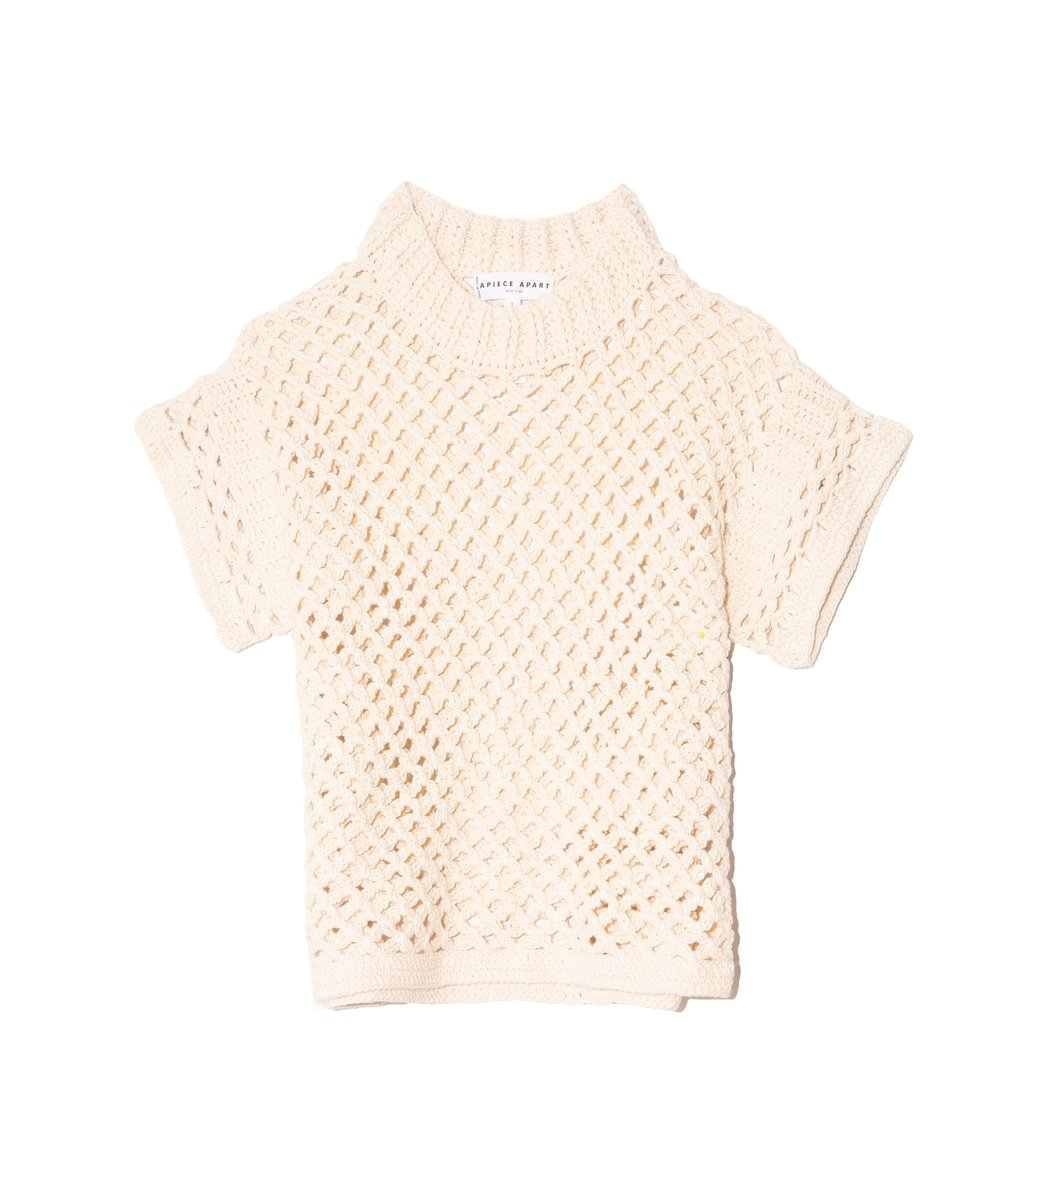 Apiece Apart Ami Cropped Net Knit Top in Cream